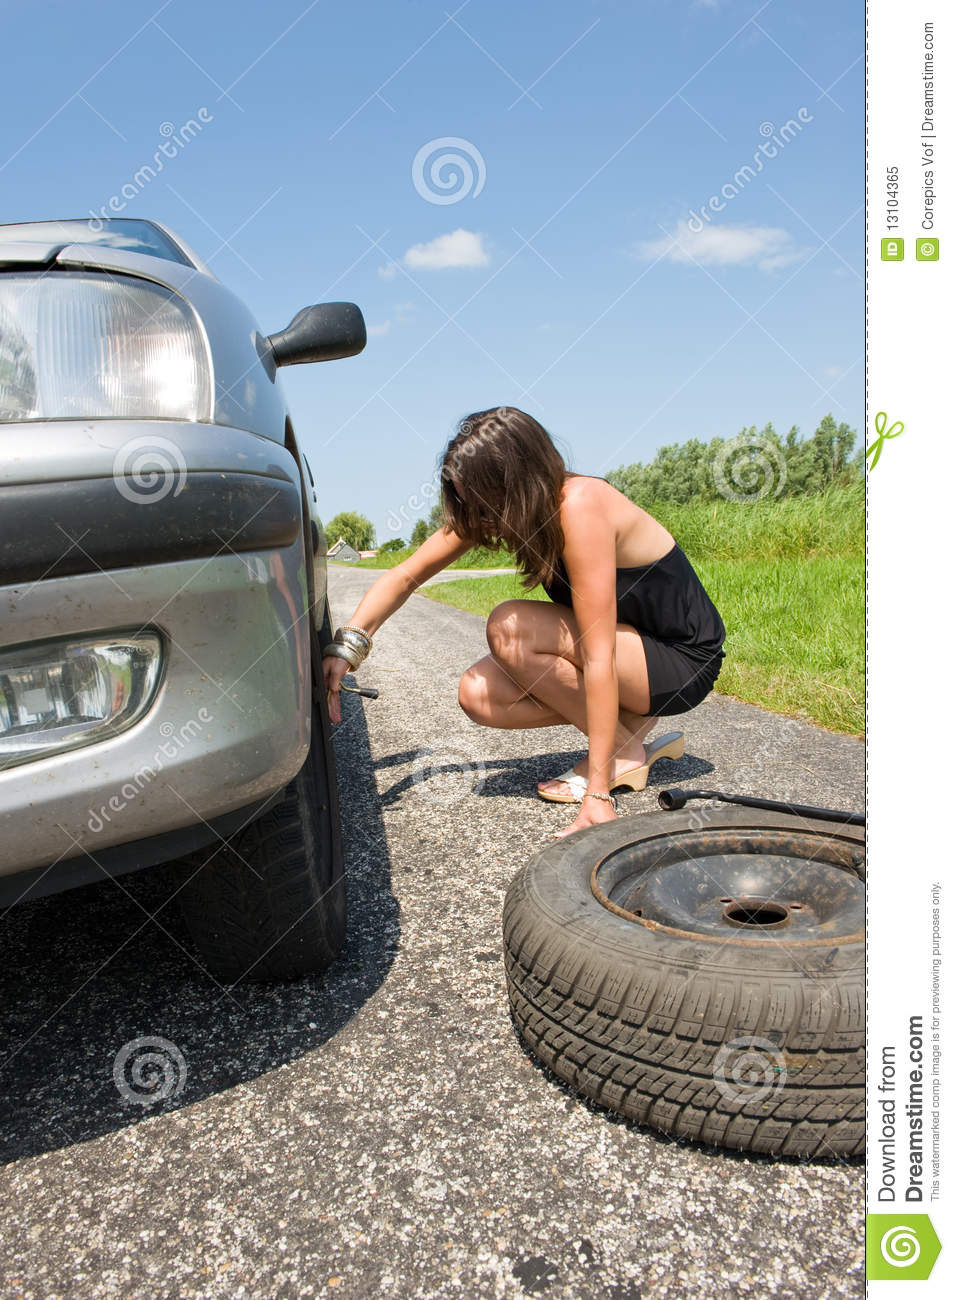 Young woman jacking up her car to change a flat tire with a spare one